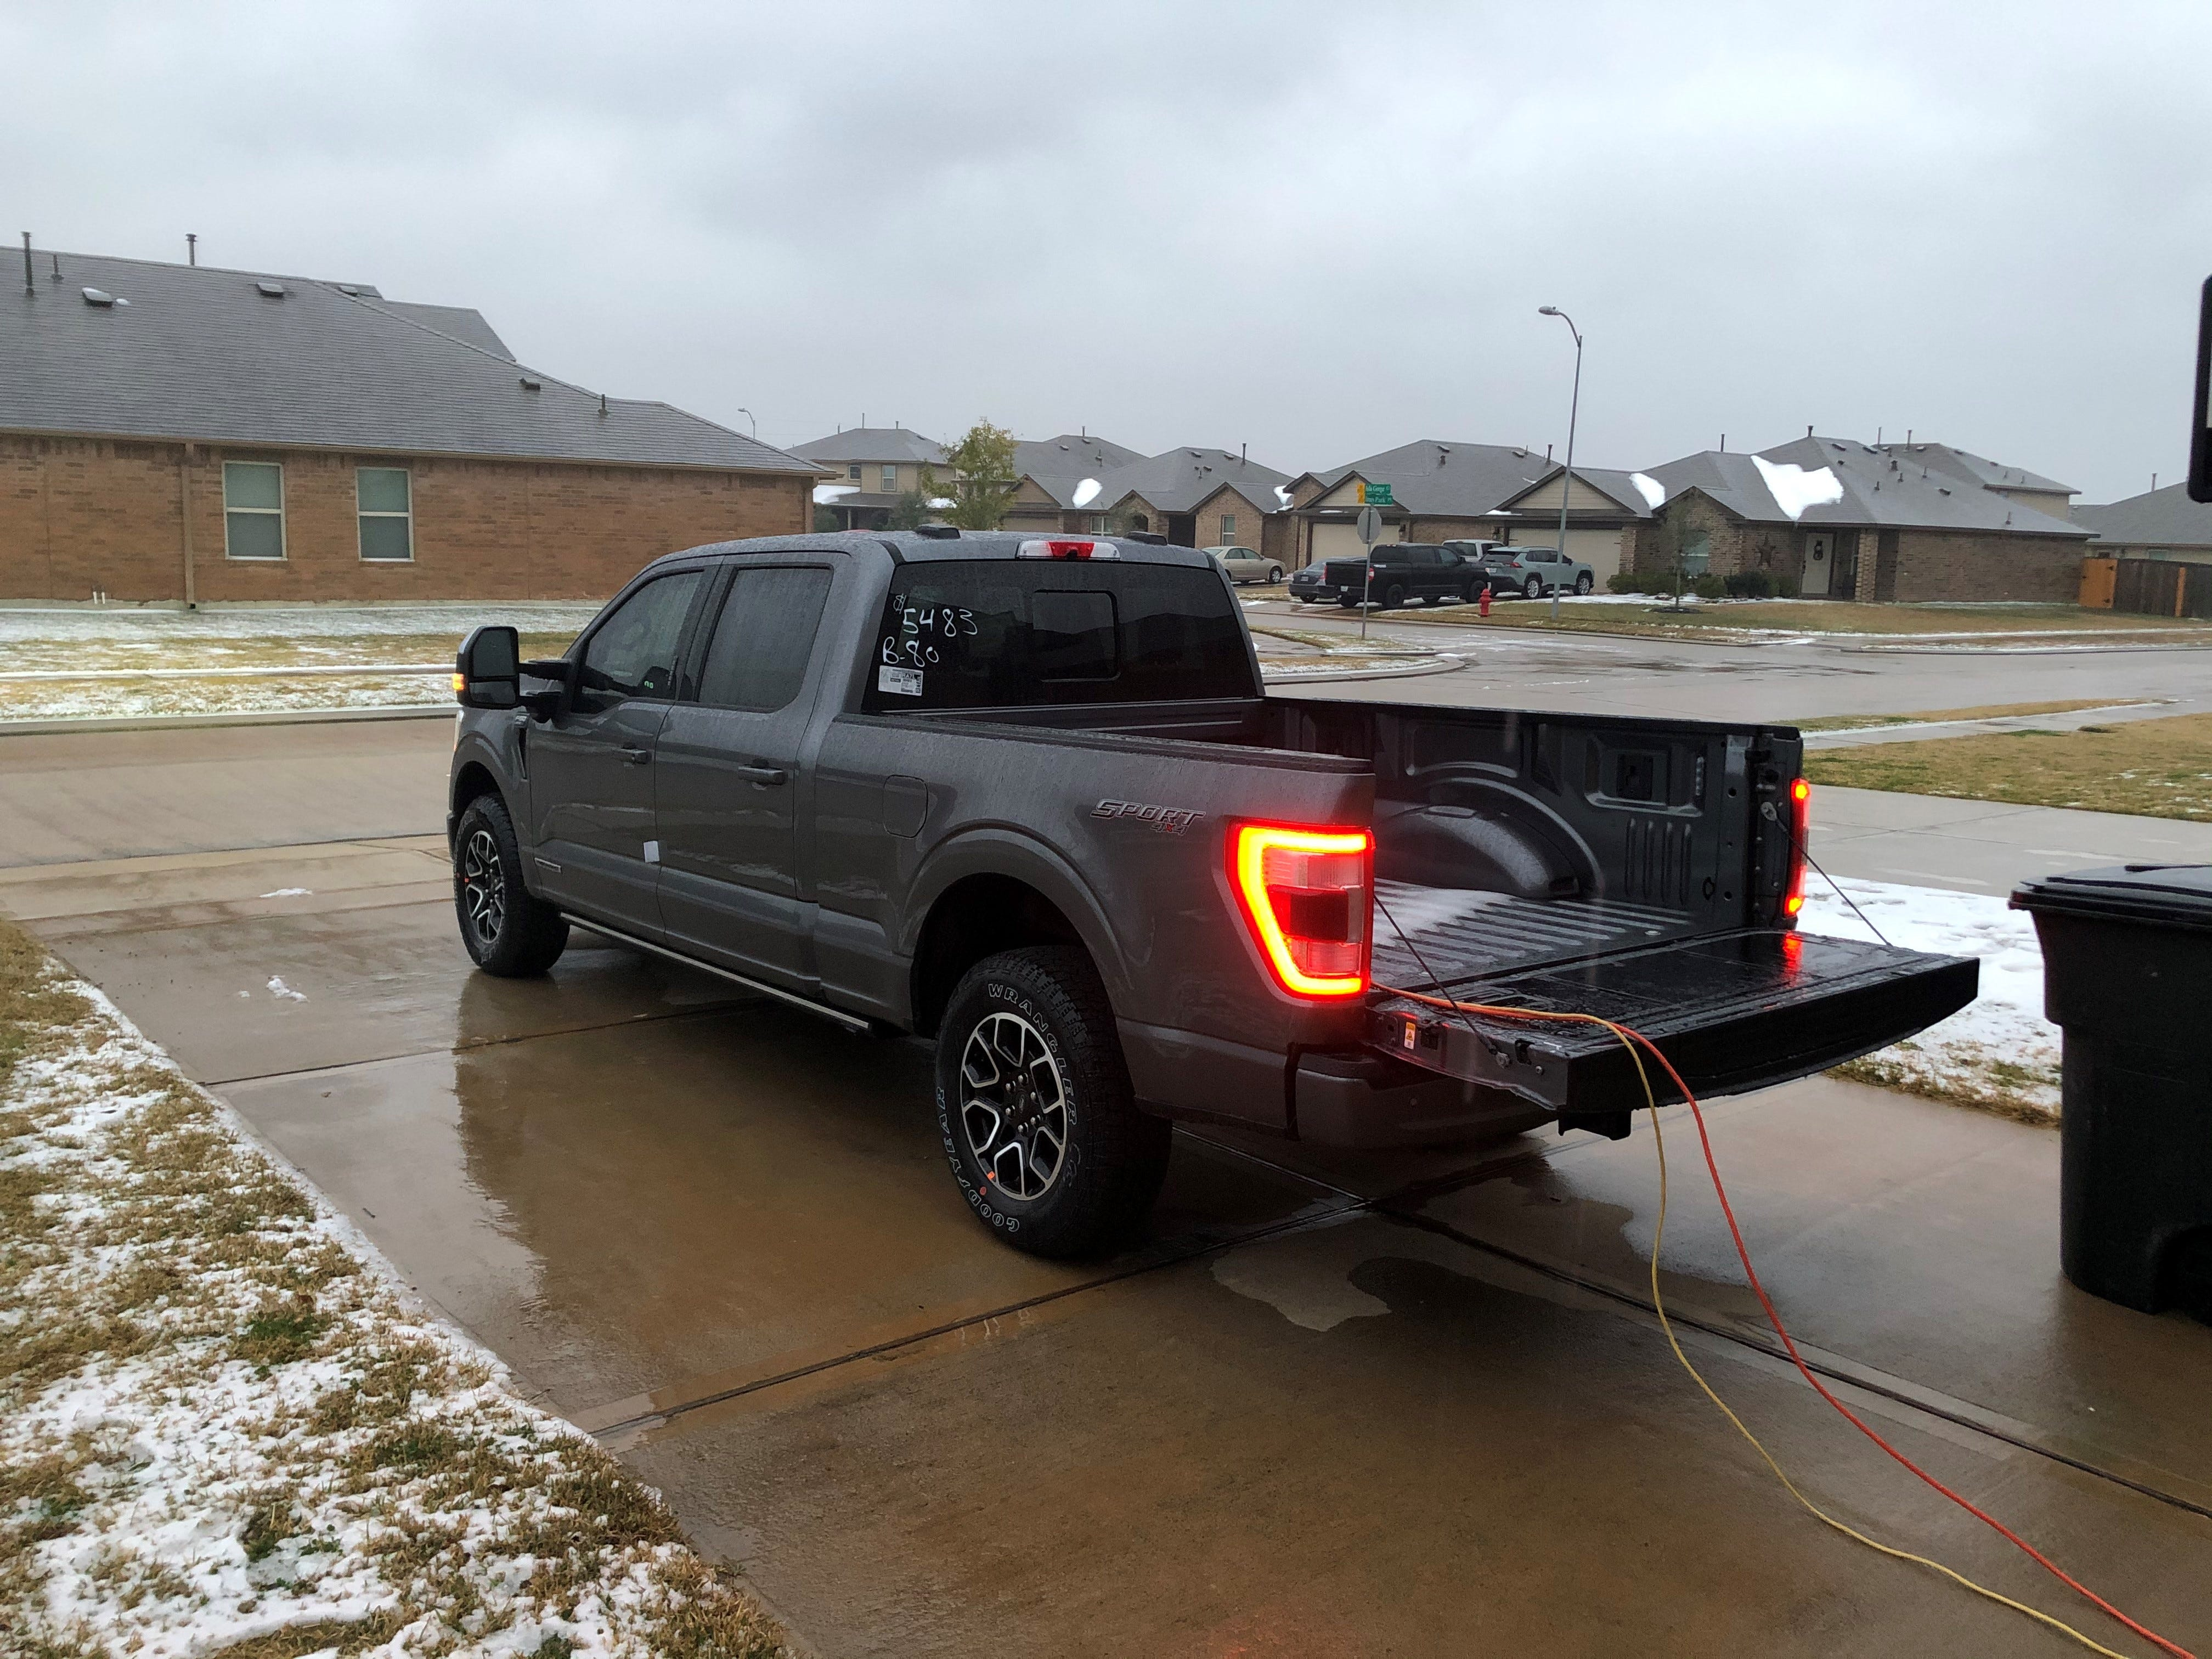 Ford F-150 goes viral after providing generator power to Texas home during pandemic